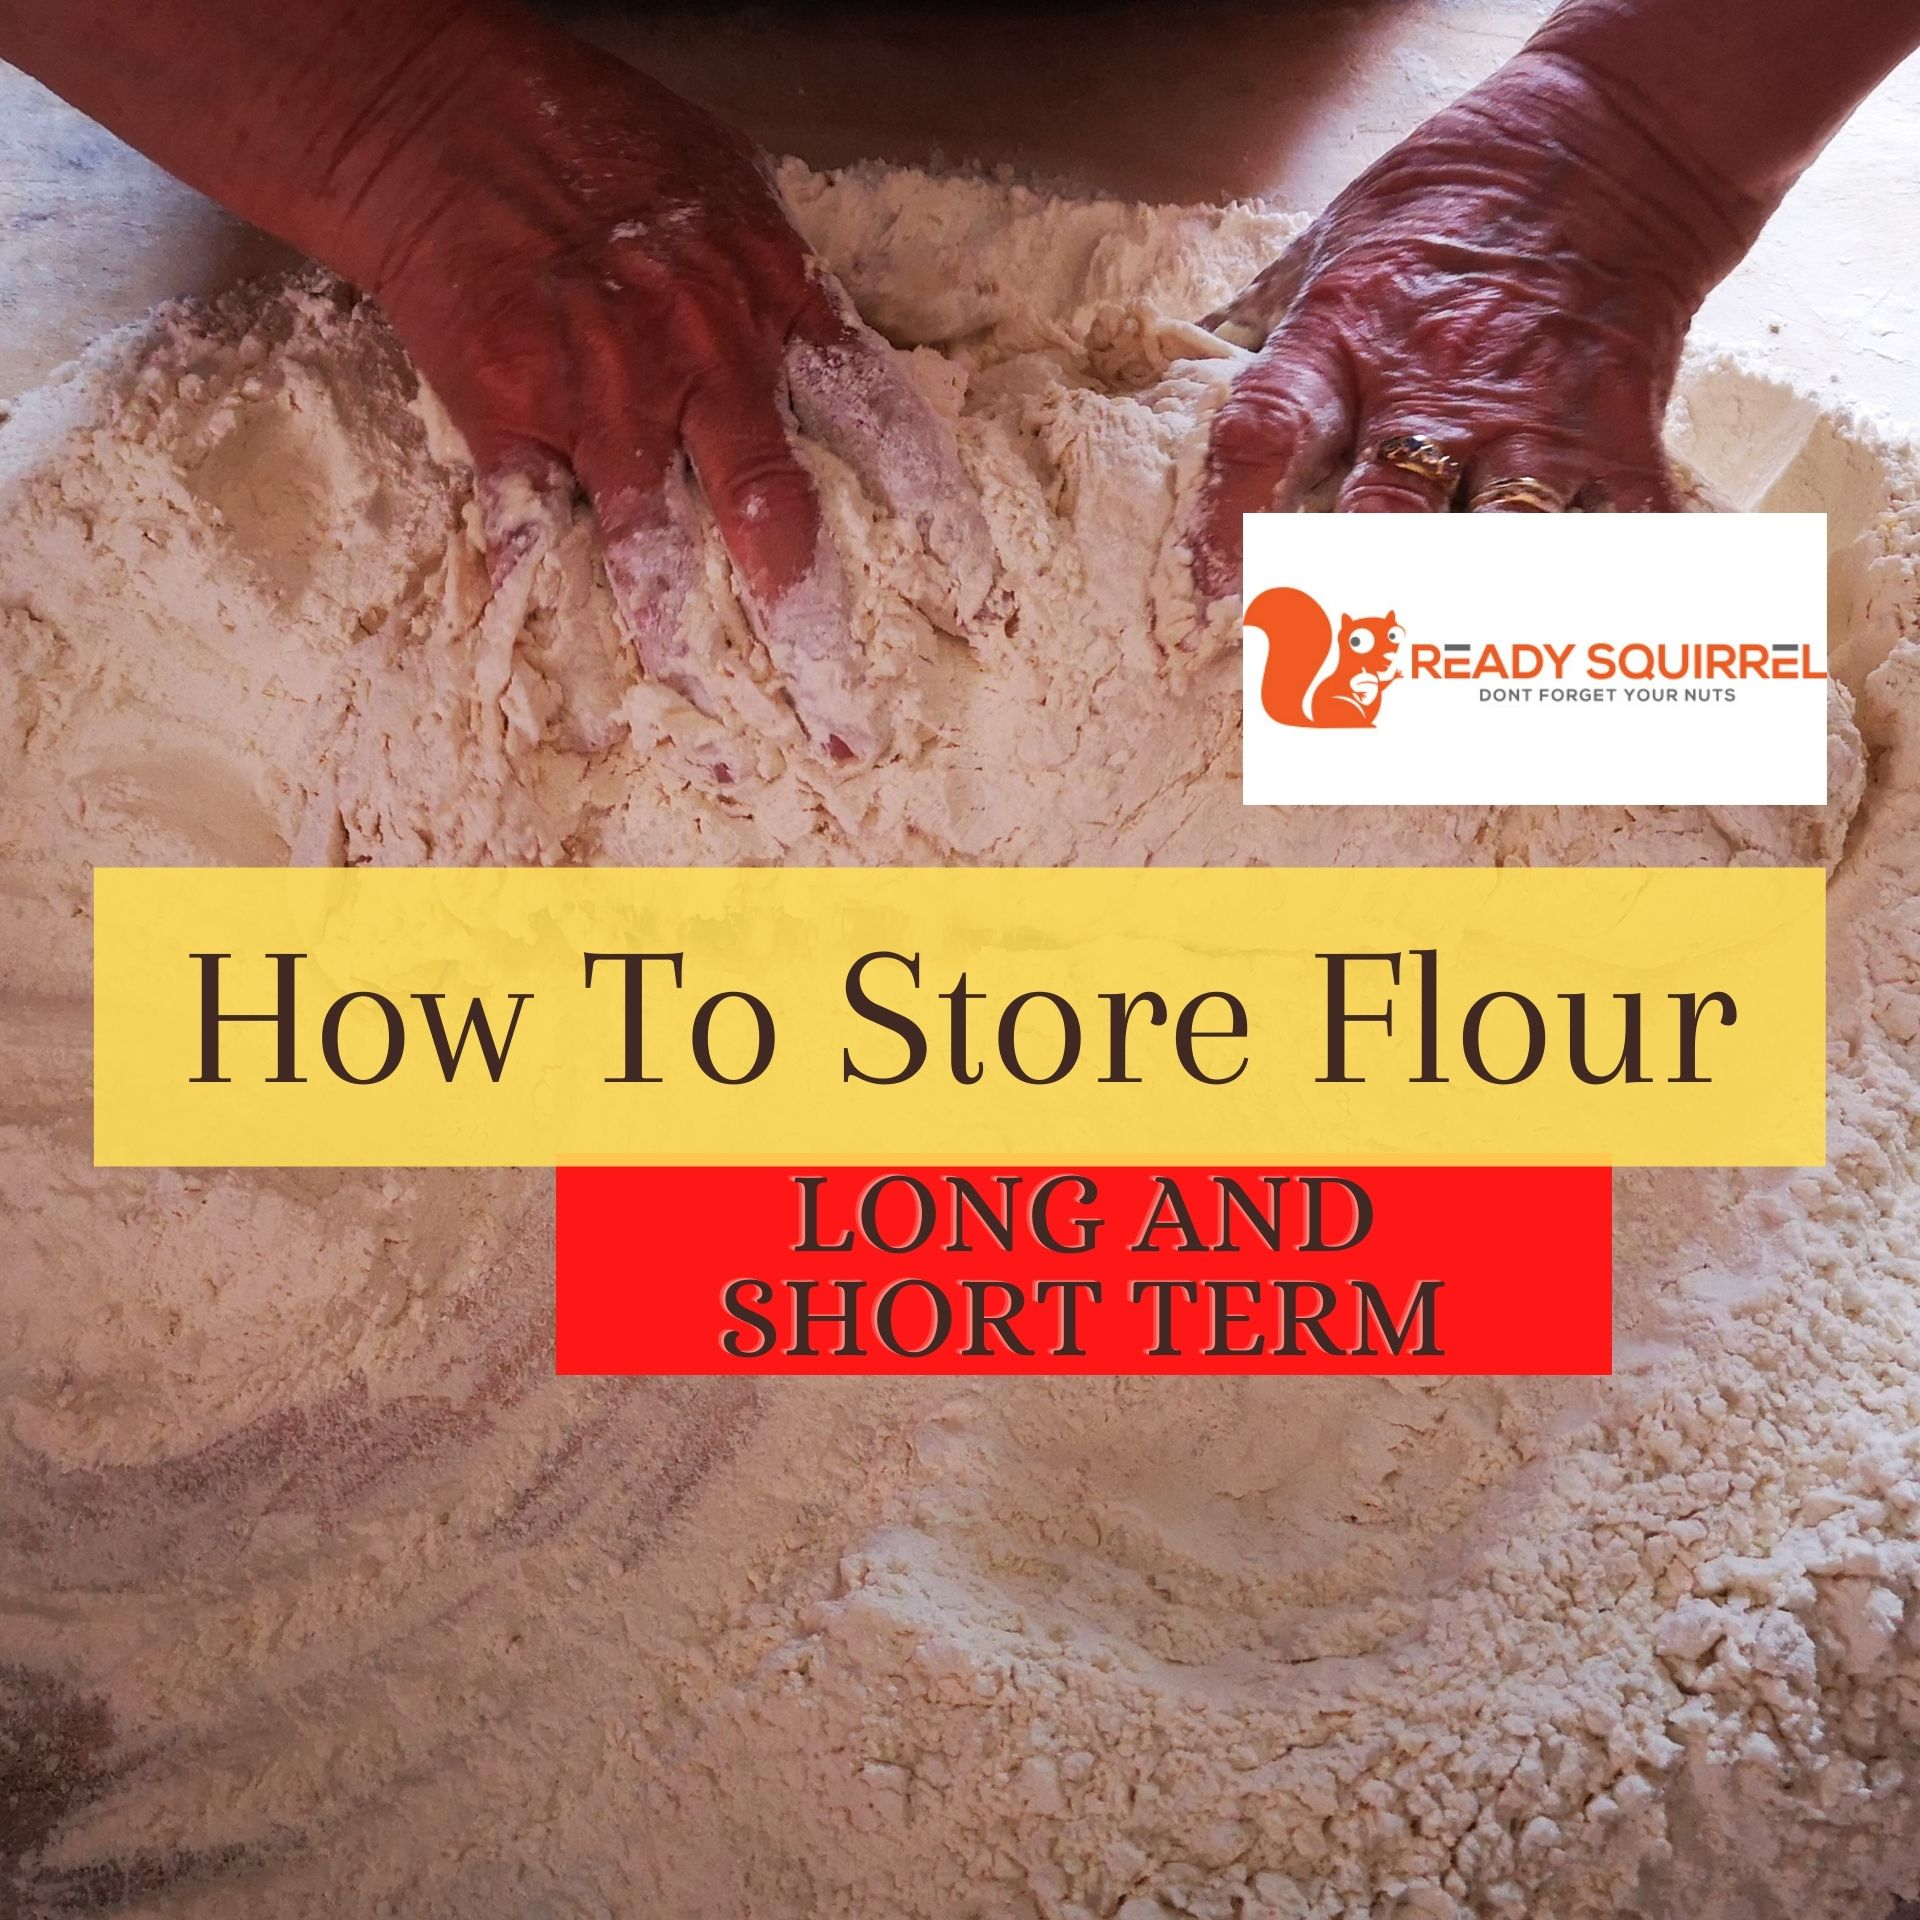 How To Store Flour Long and Short-term